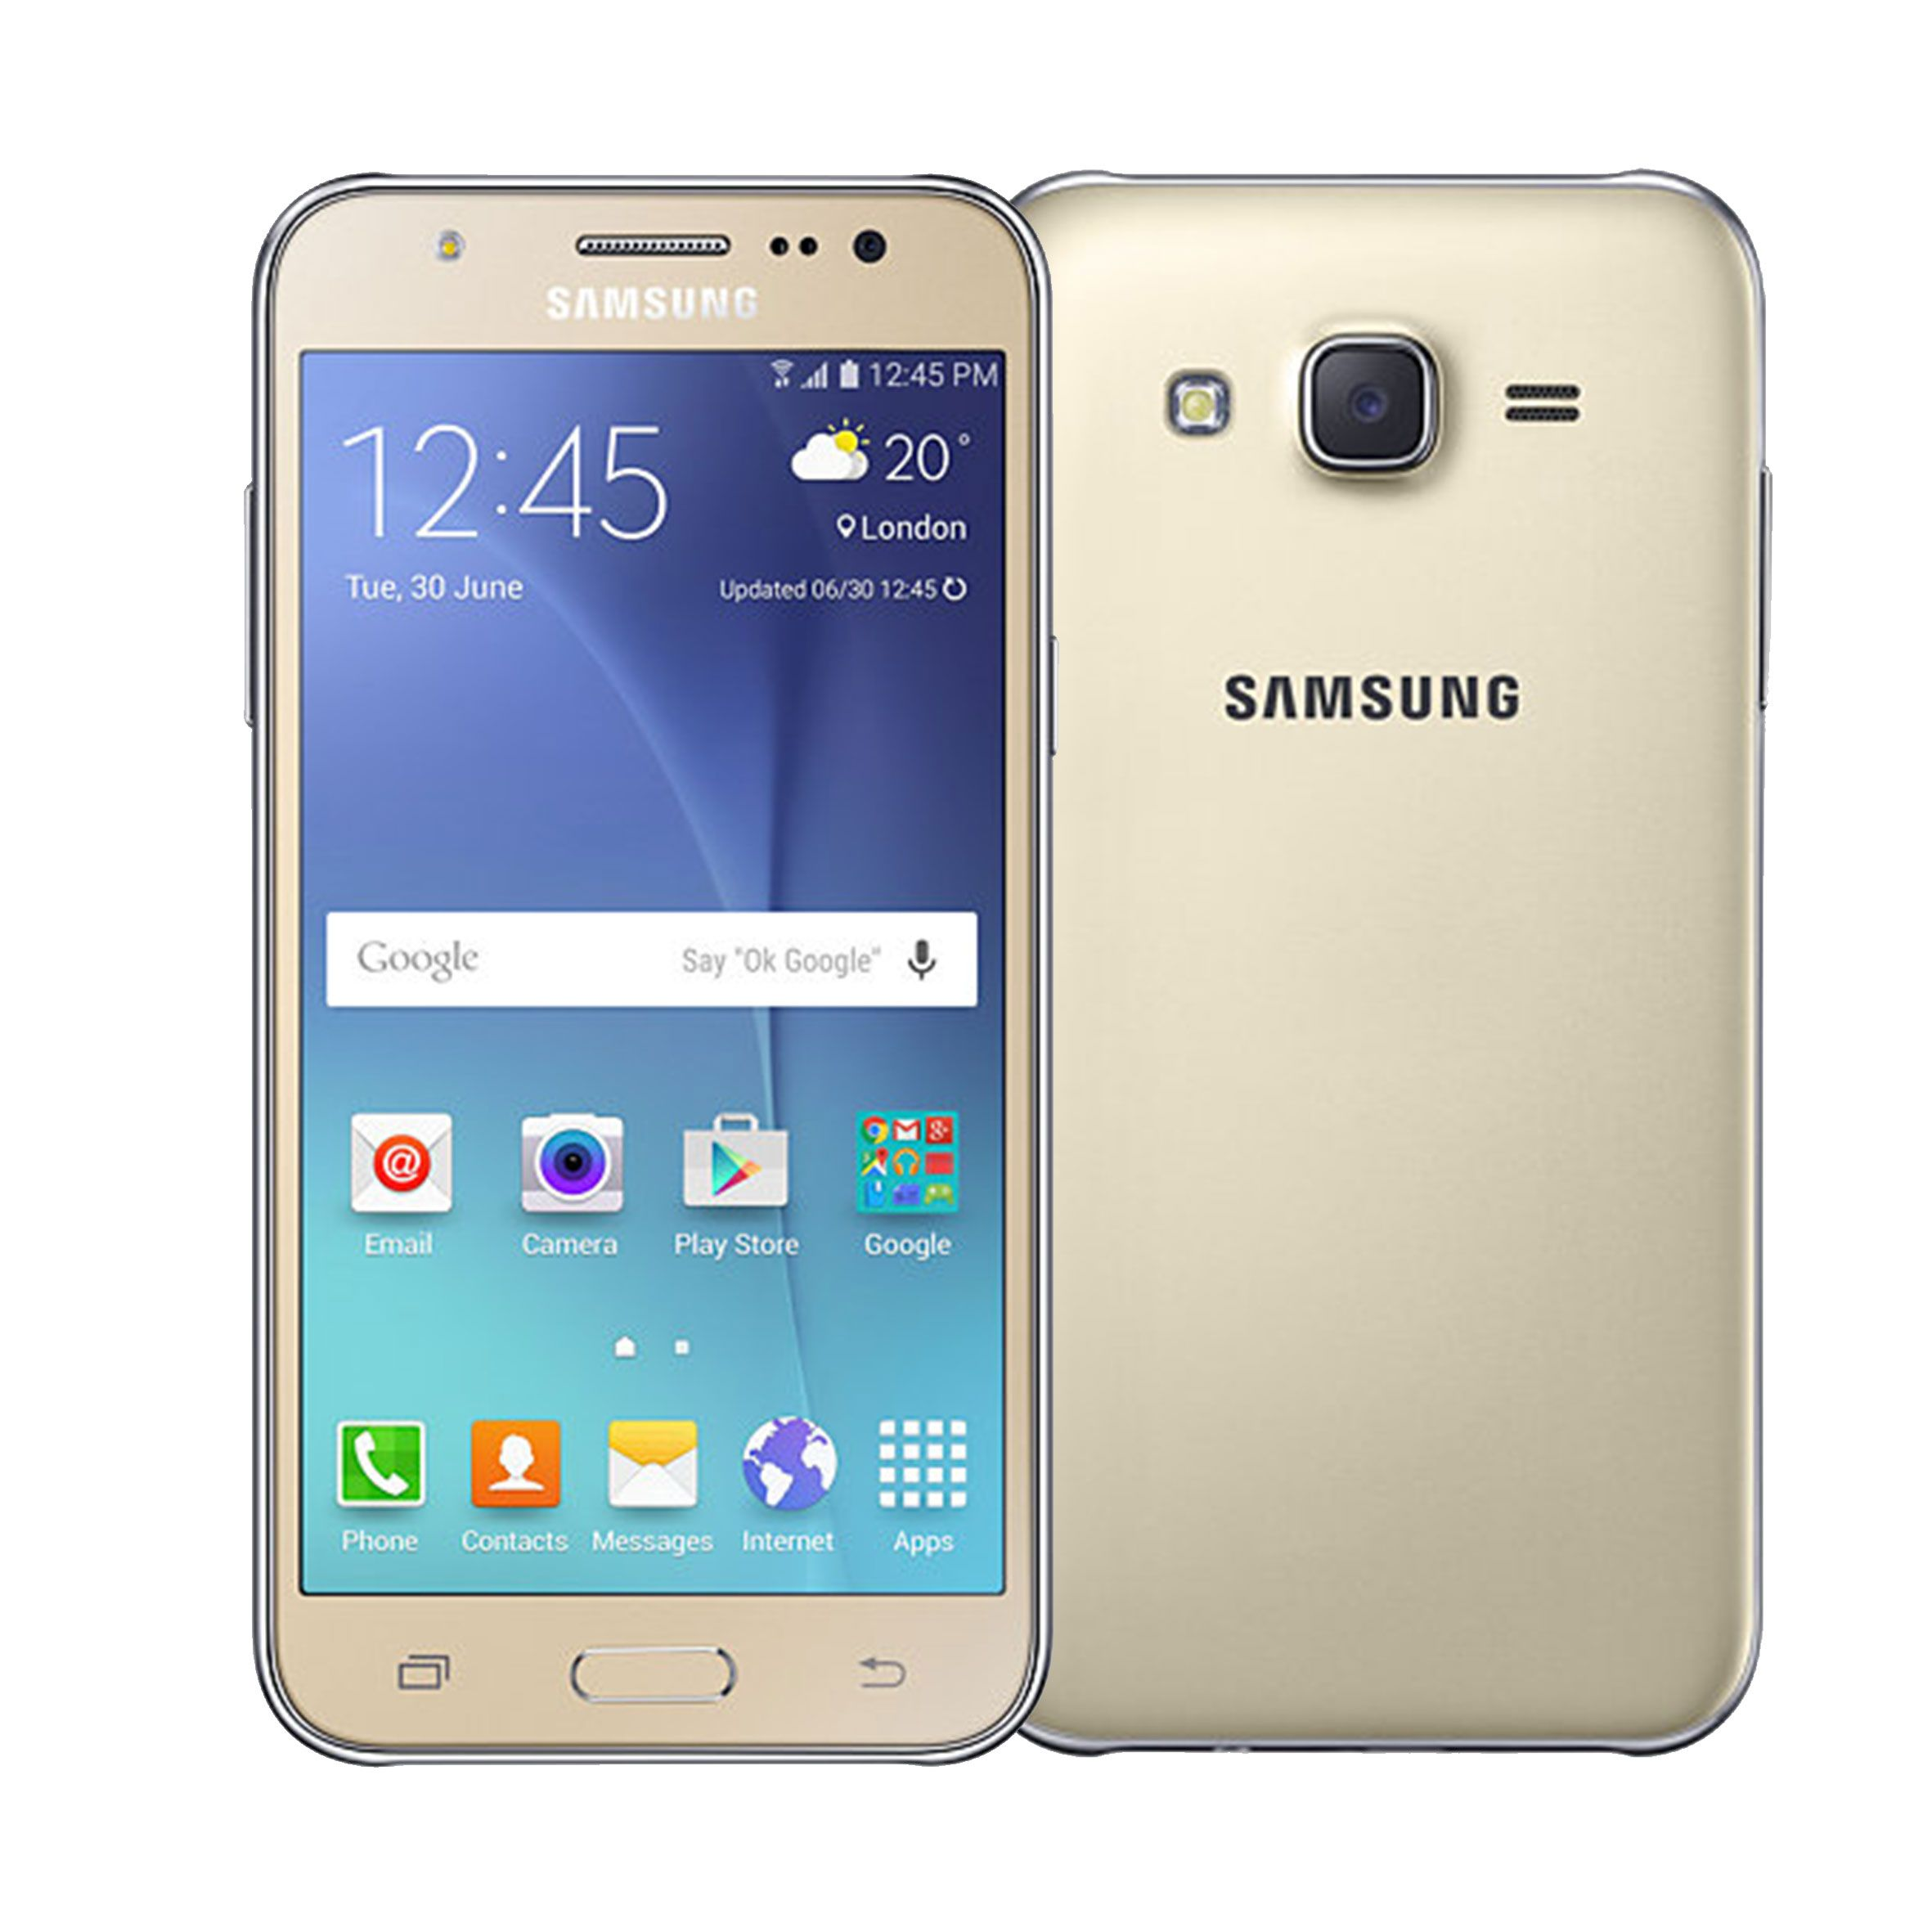 Samsung Galaxy J5 Smartphone 8GB Best Price Bangladesh best mobile phone…